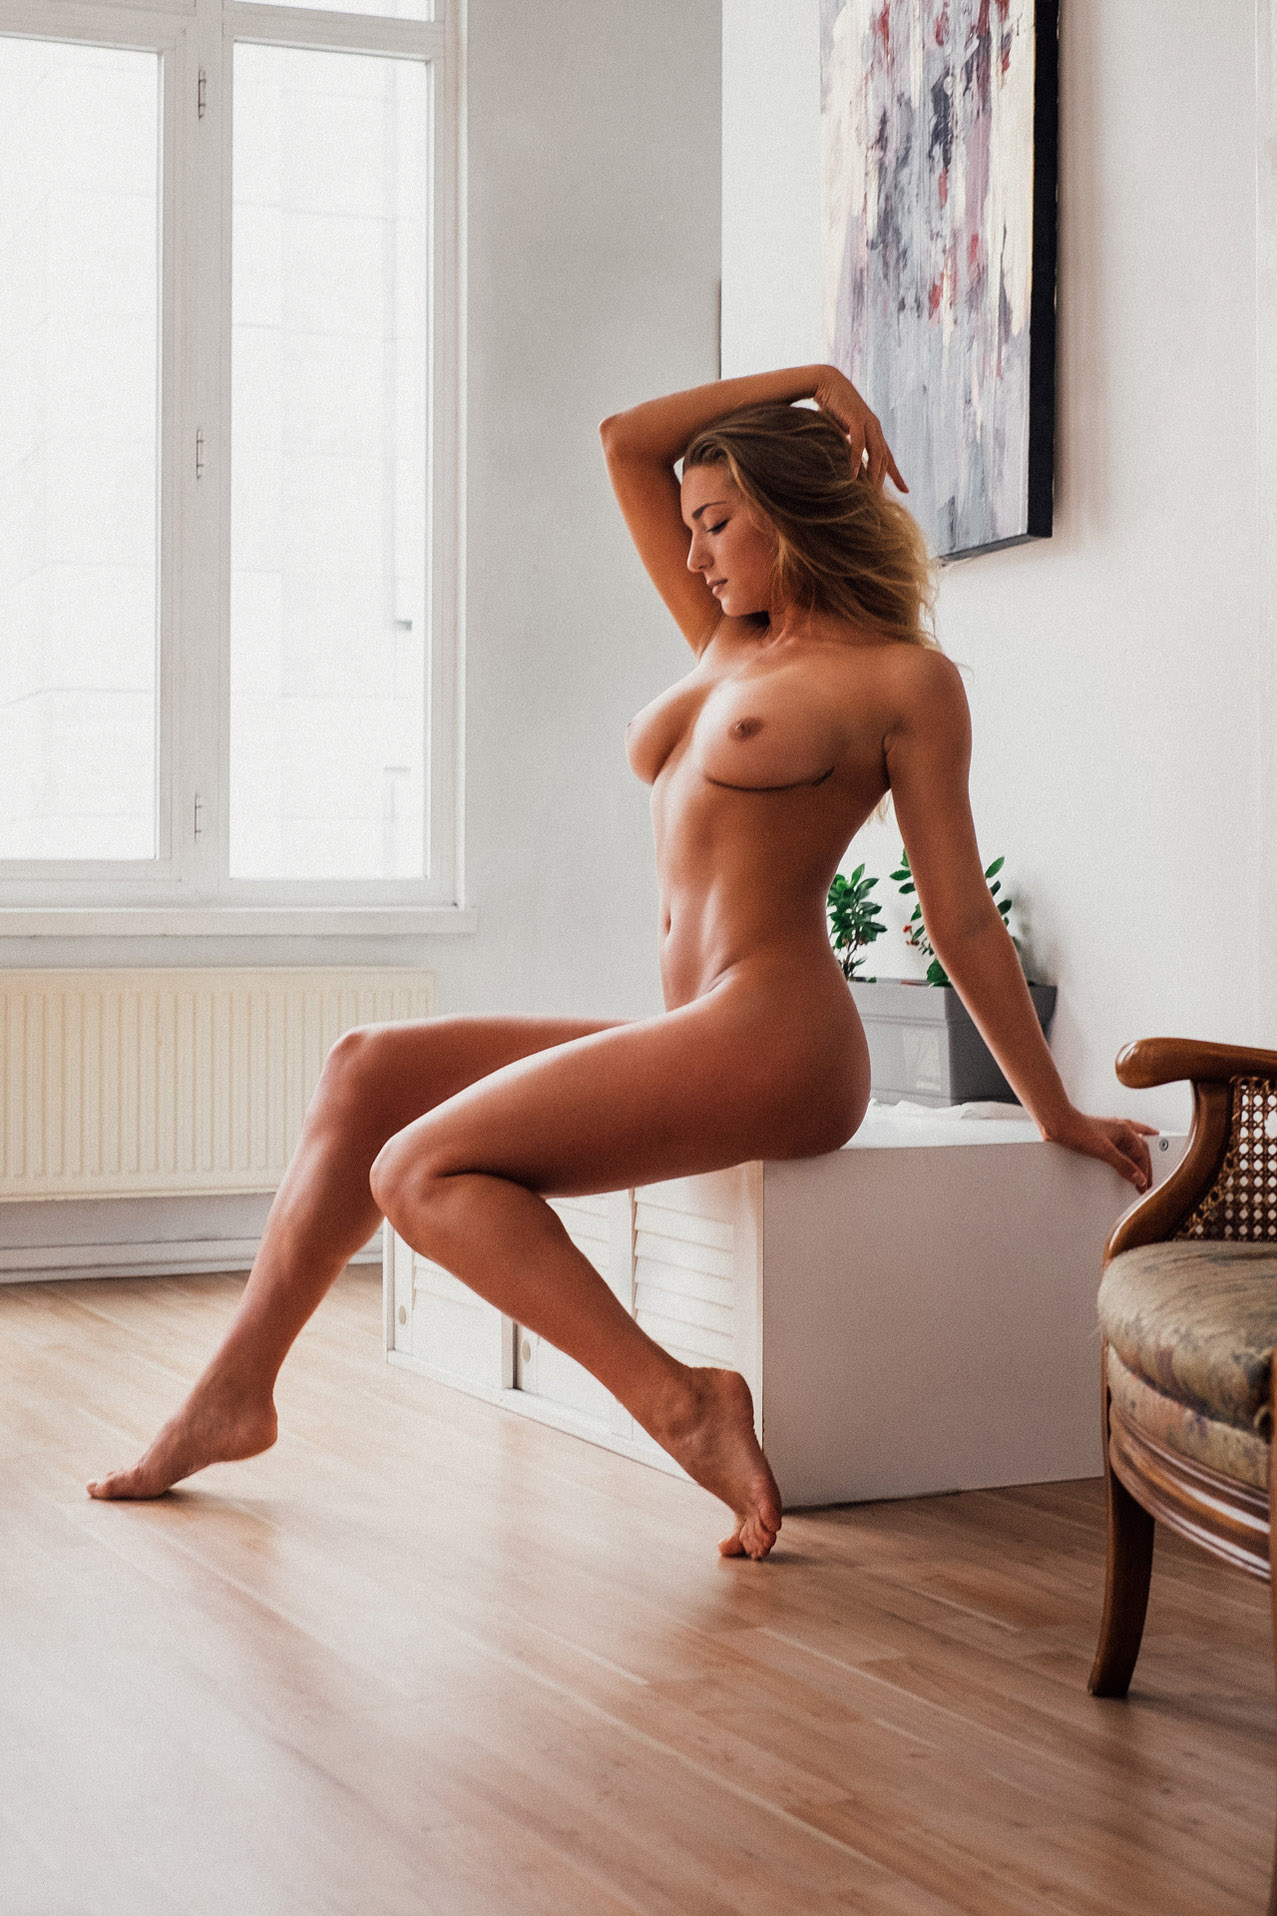 Nicola Wills nude by Julien LRVR